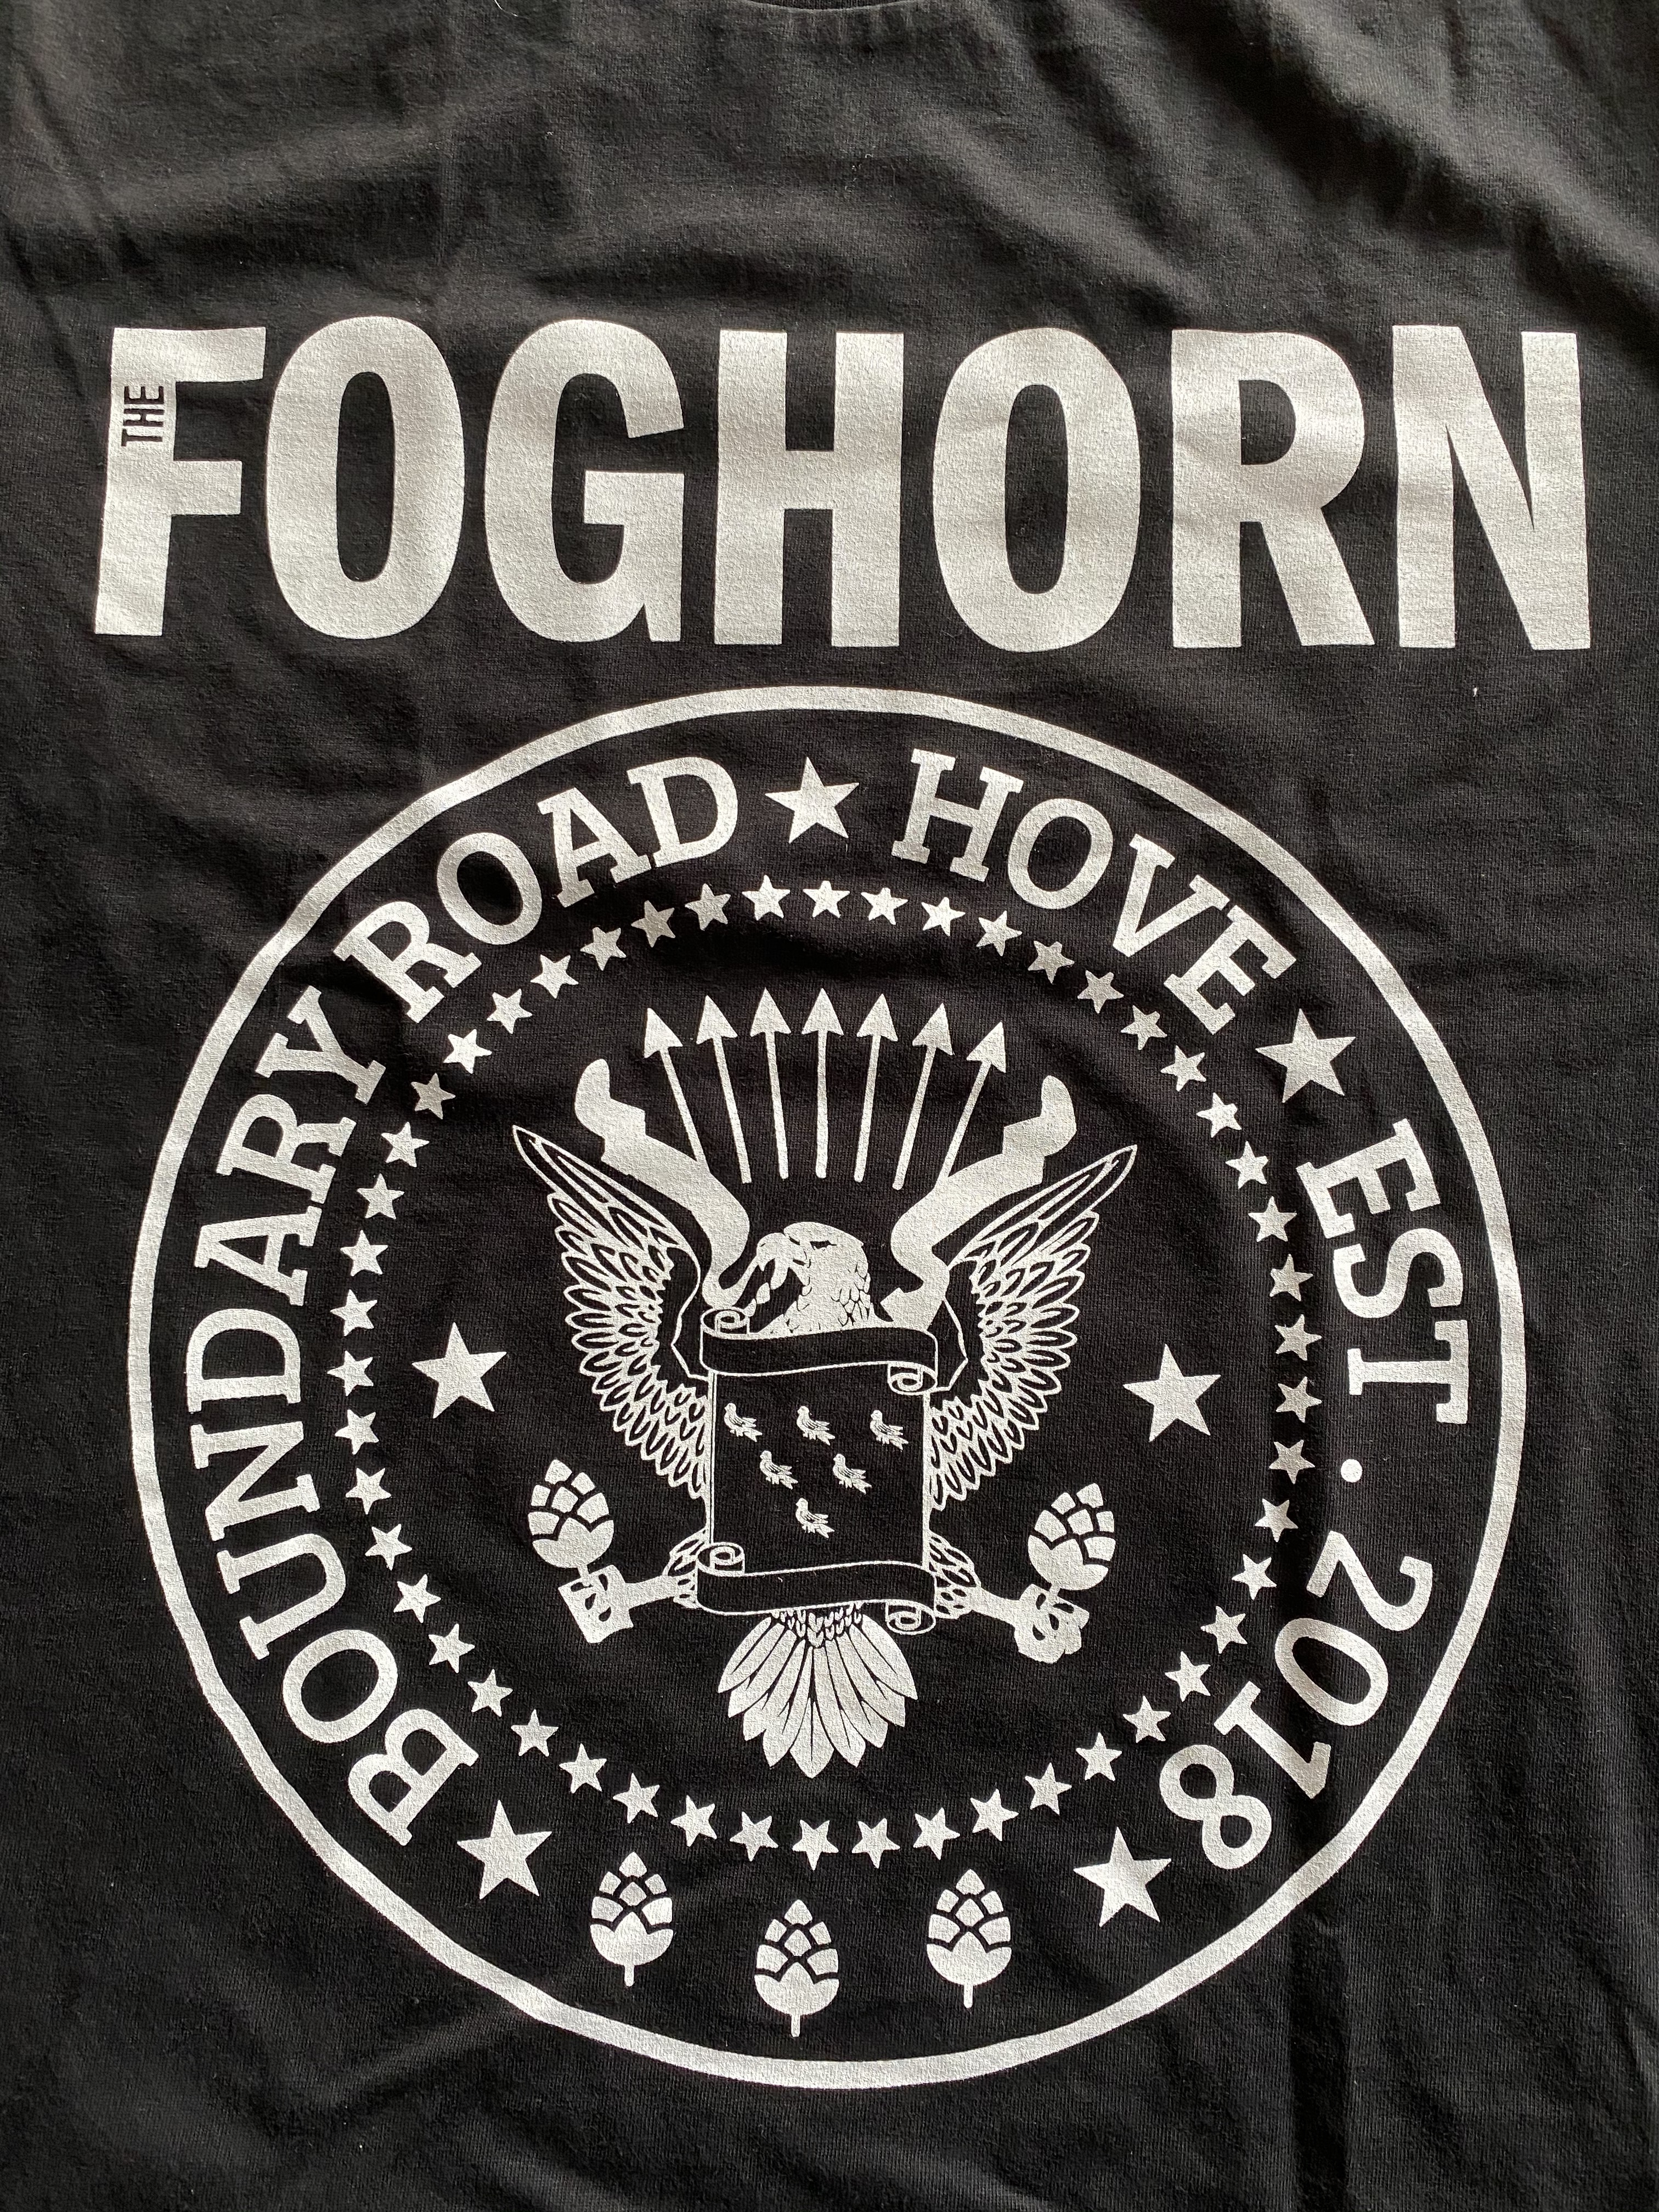 The Foghorn T-Shirt